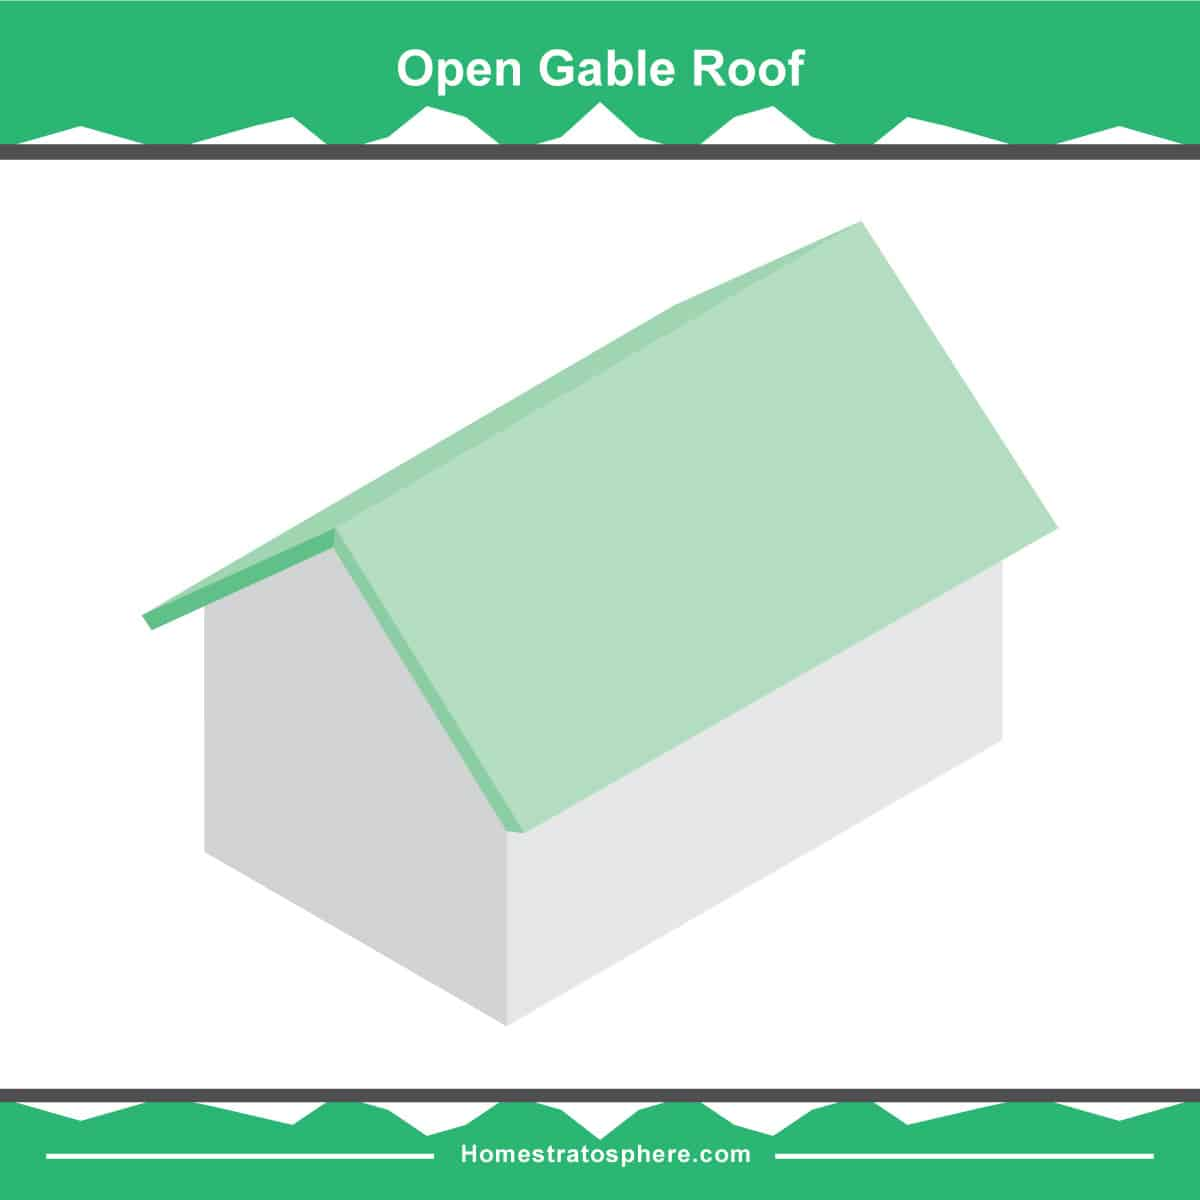 Open gable roof diagram